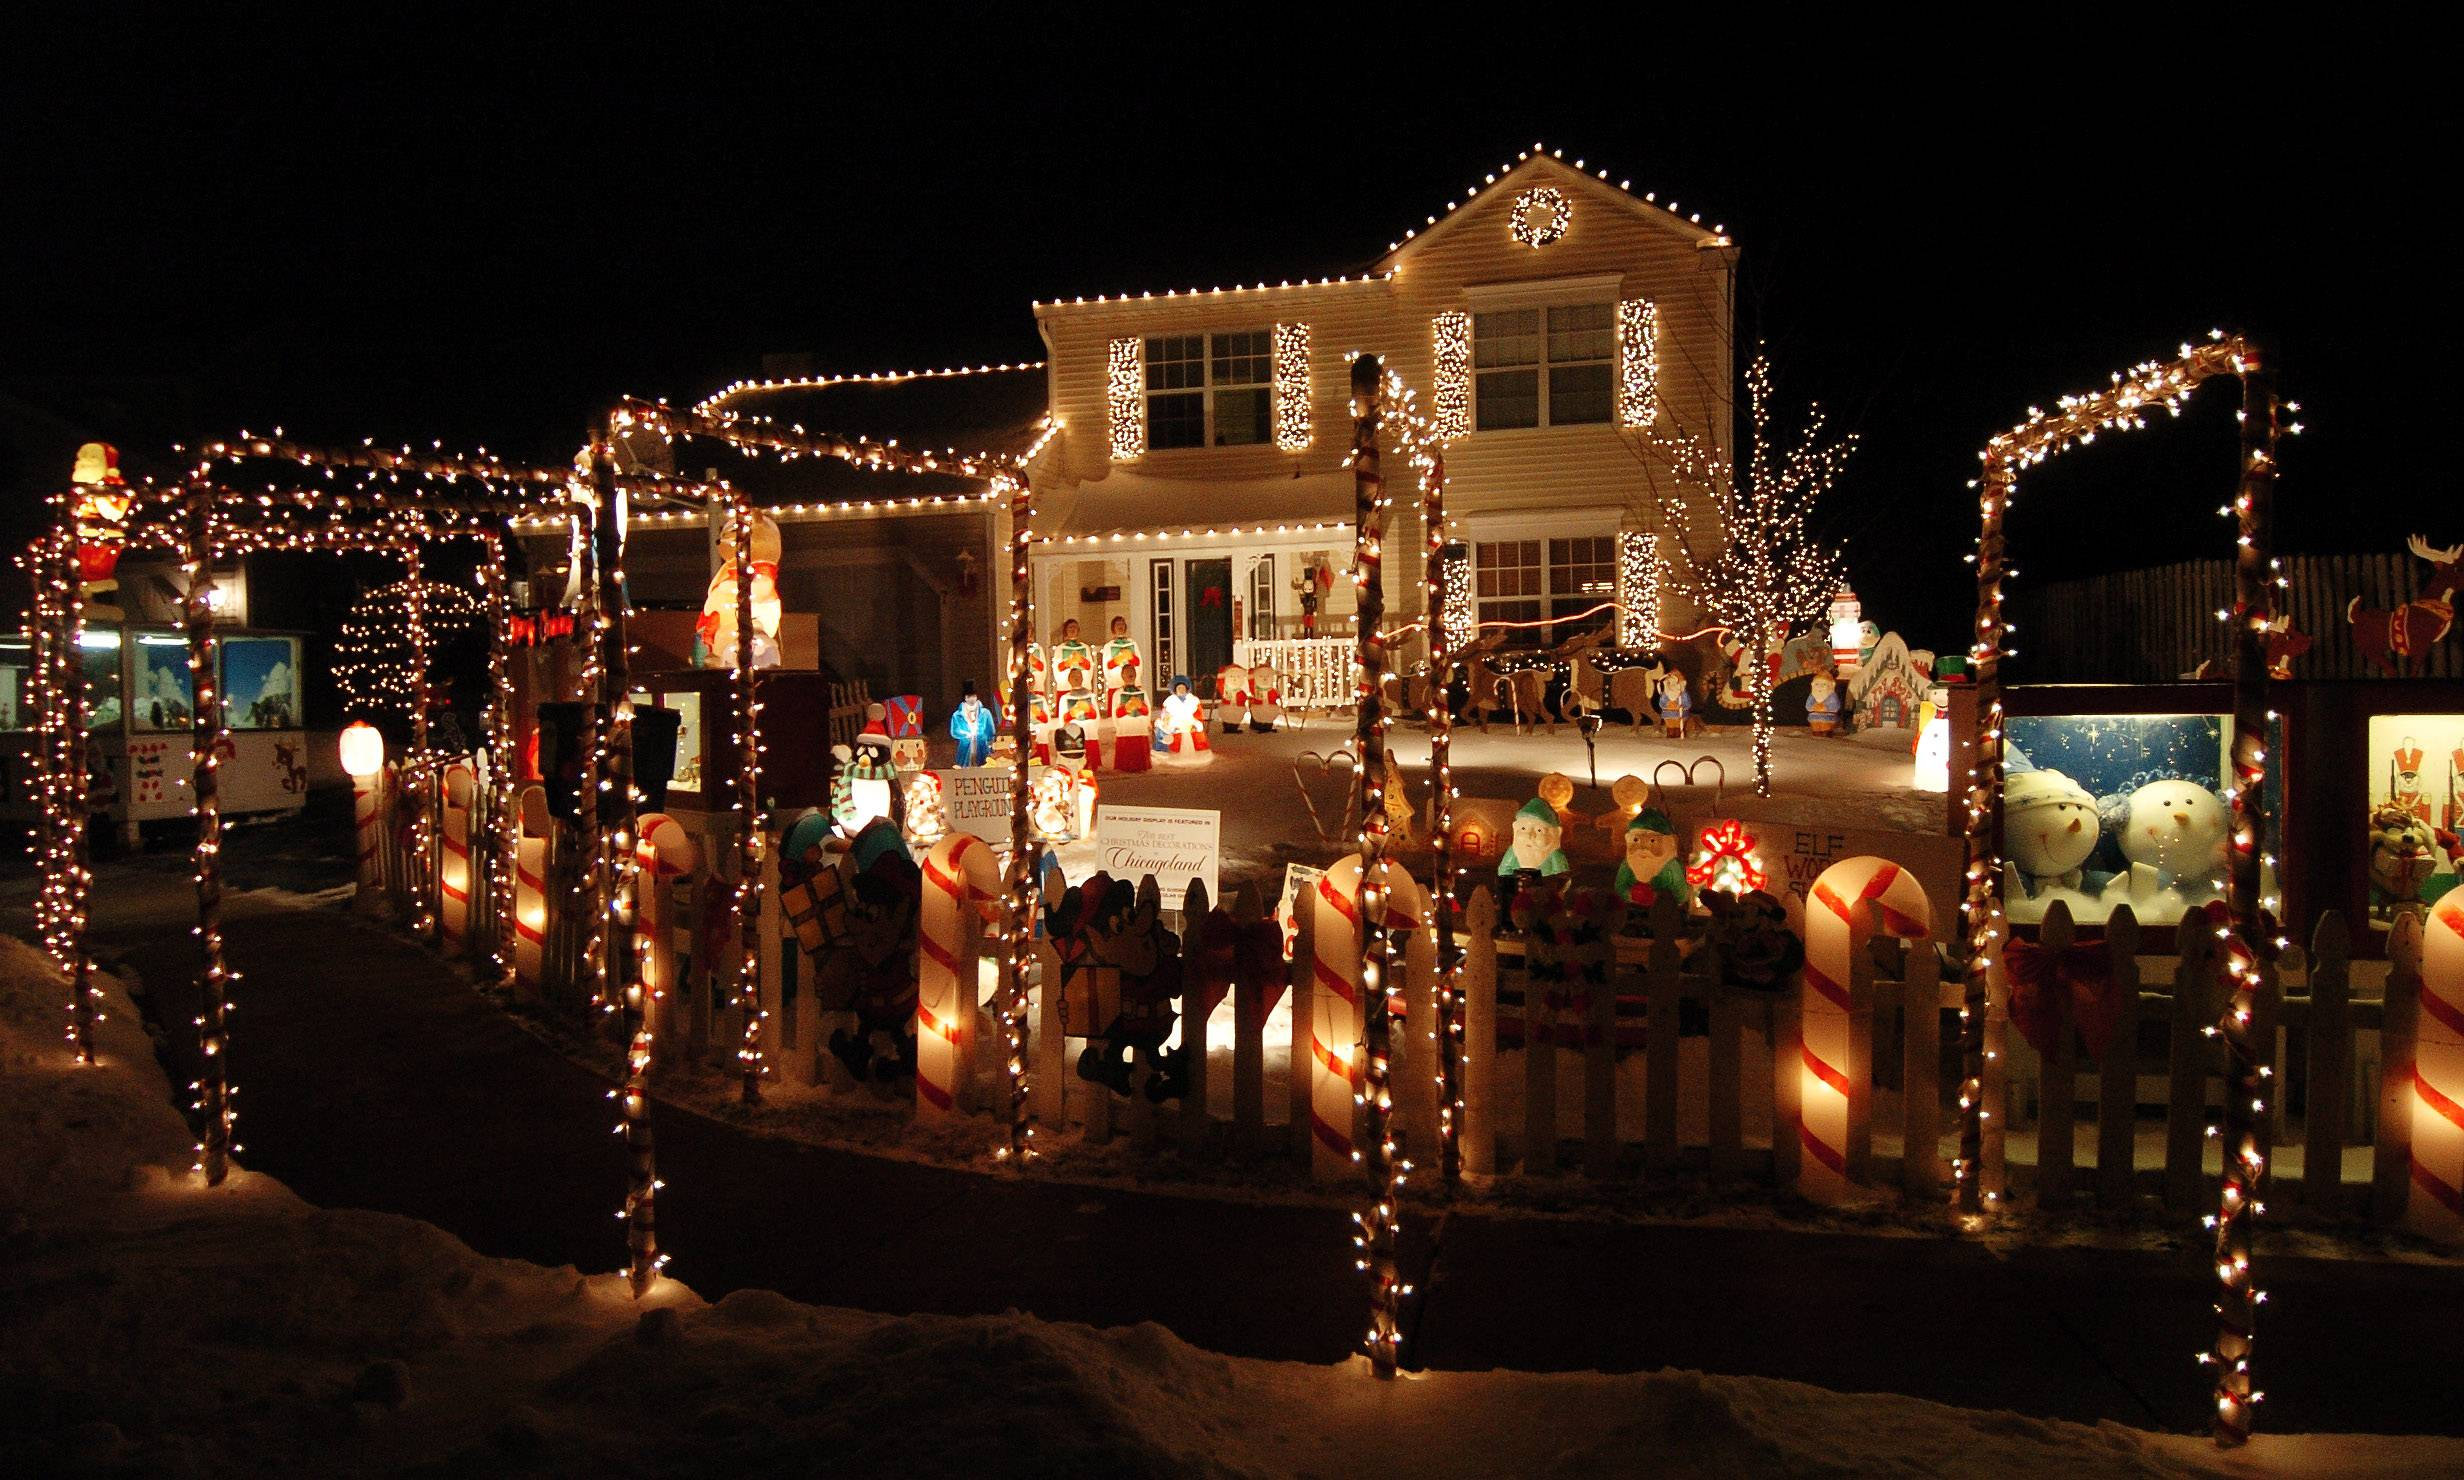 The Johnson home at 7 Dover Court in Streamwood took the top prize in the 2008 & Images: Past winners of our holiday lights contest azcodes.com